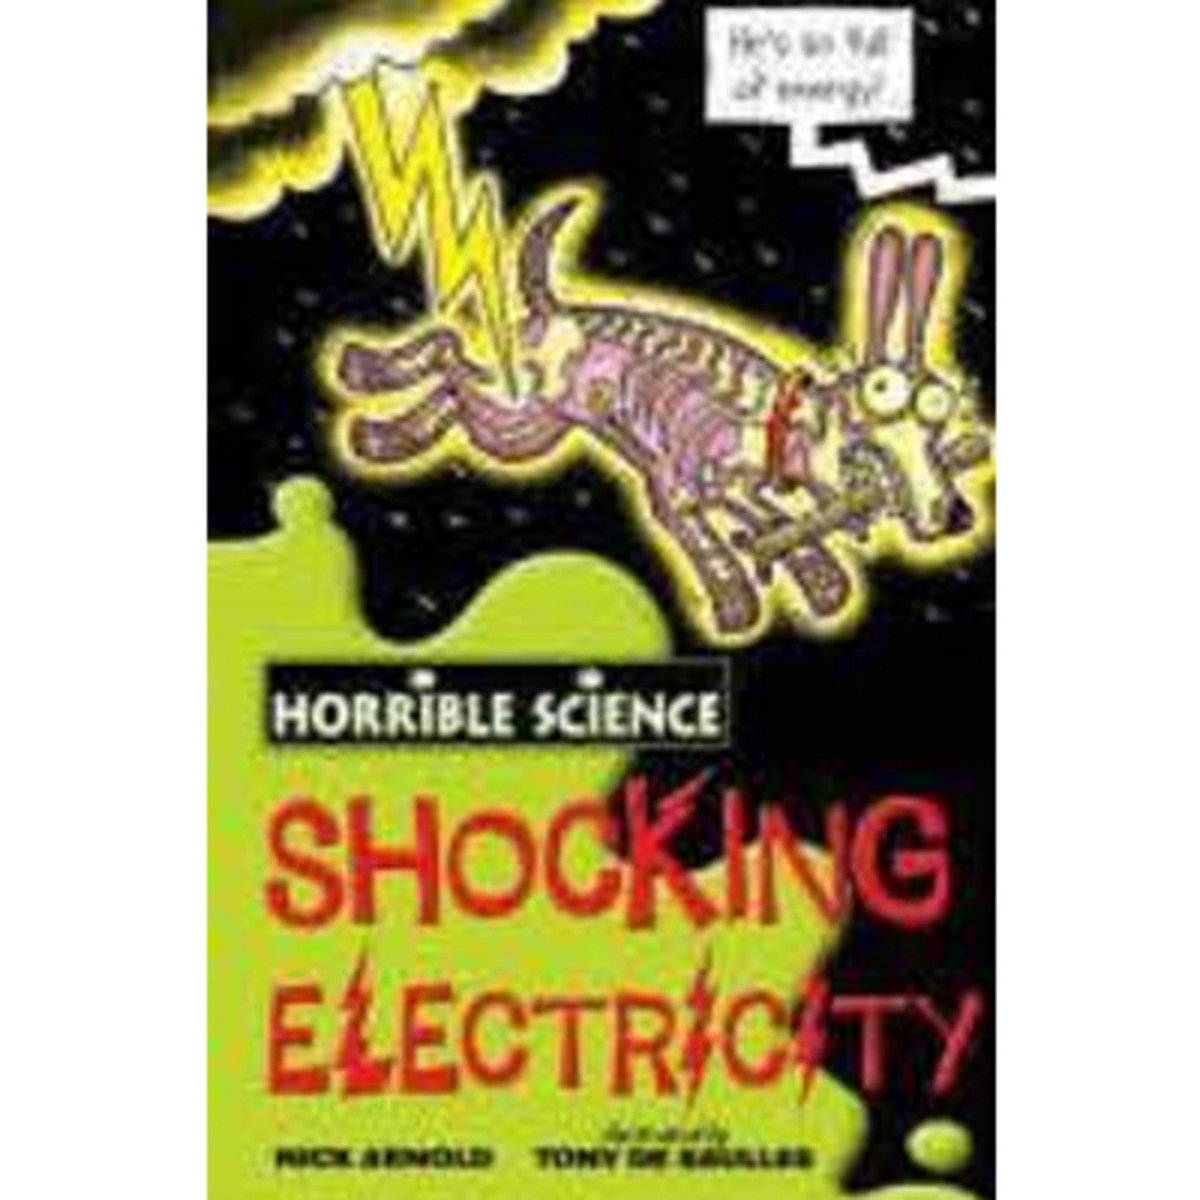 HORRIBLE SCIENCE: SHOCKING ELECTRICITY 9781407105369